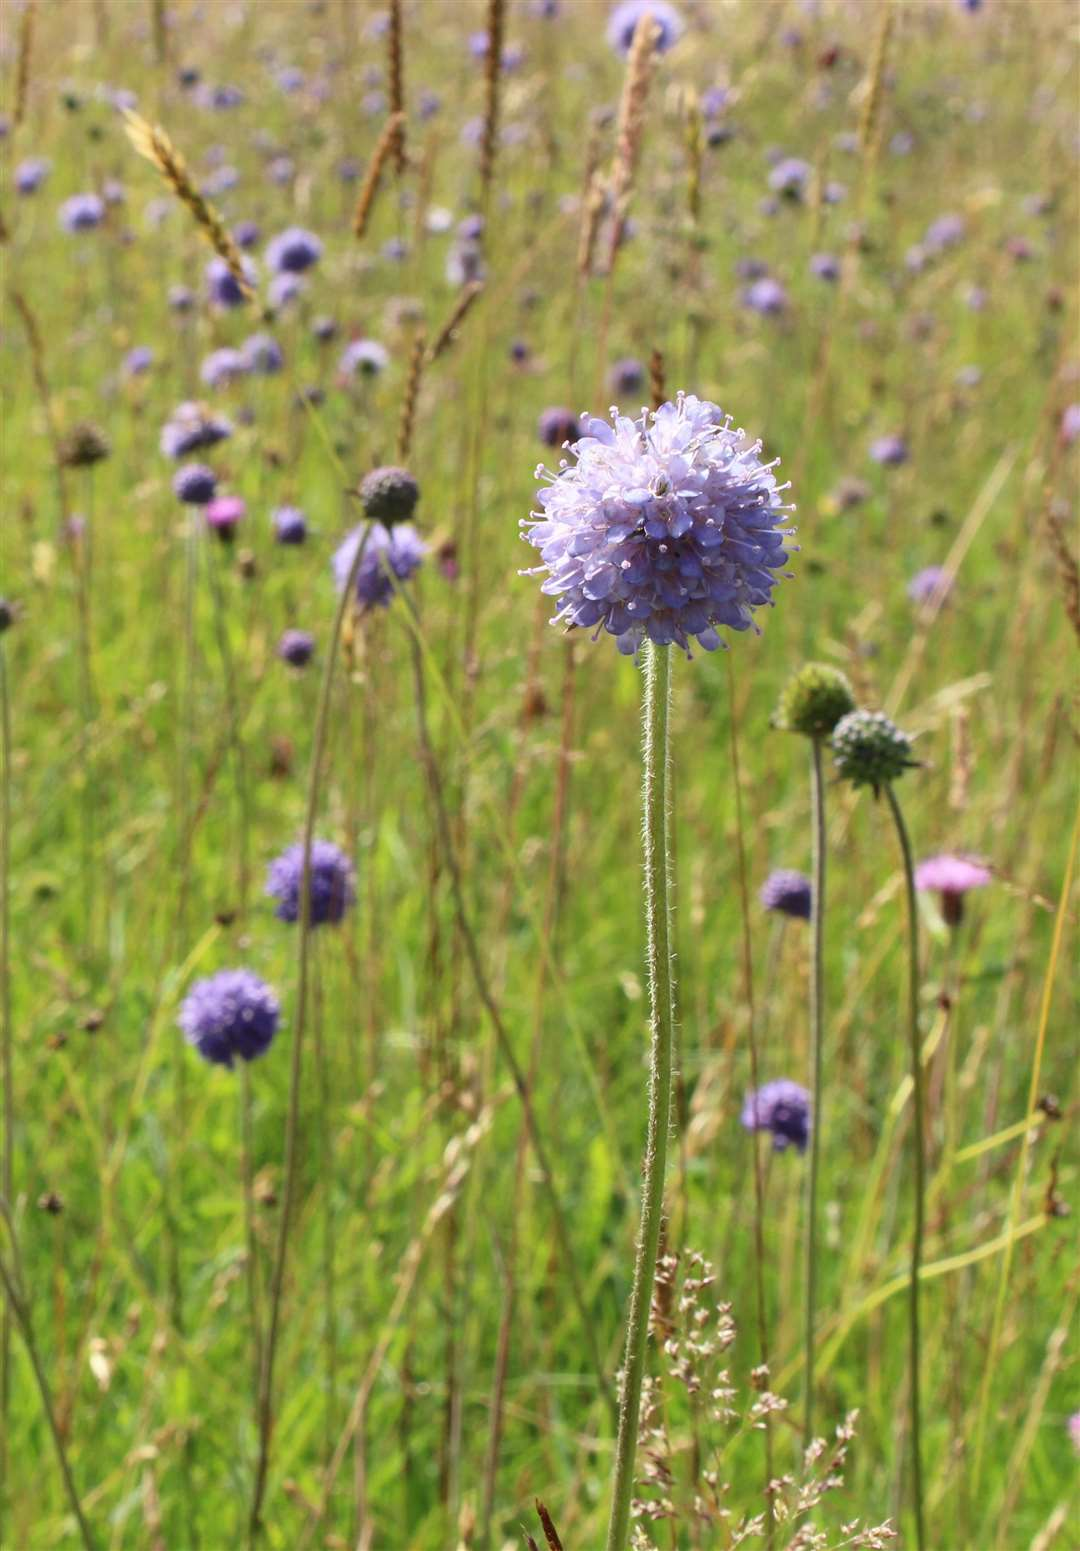 Devil's-bit scabious. Credit: Barrie Wilkinson (3008346)